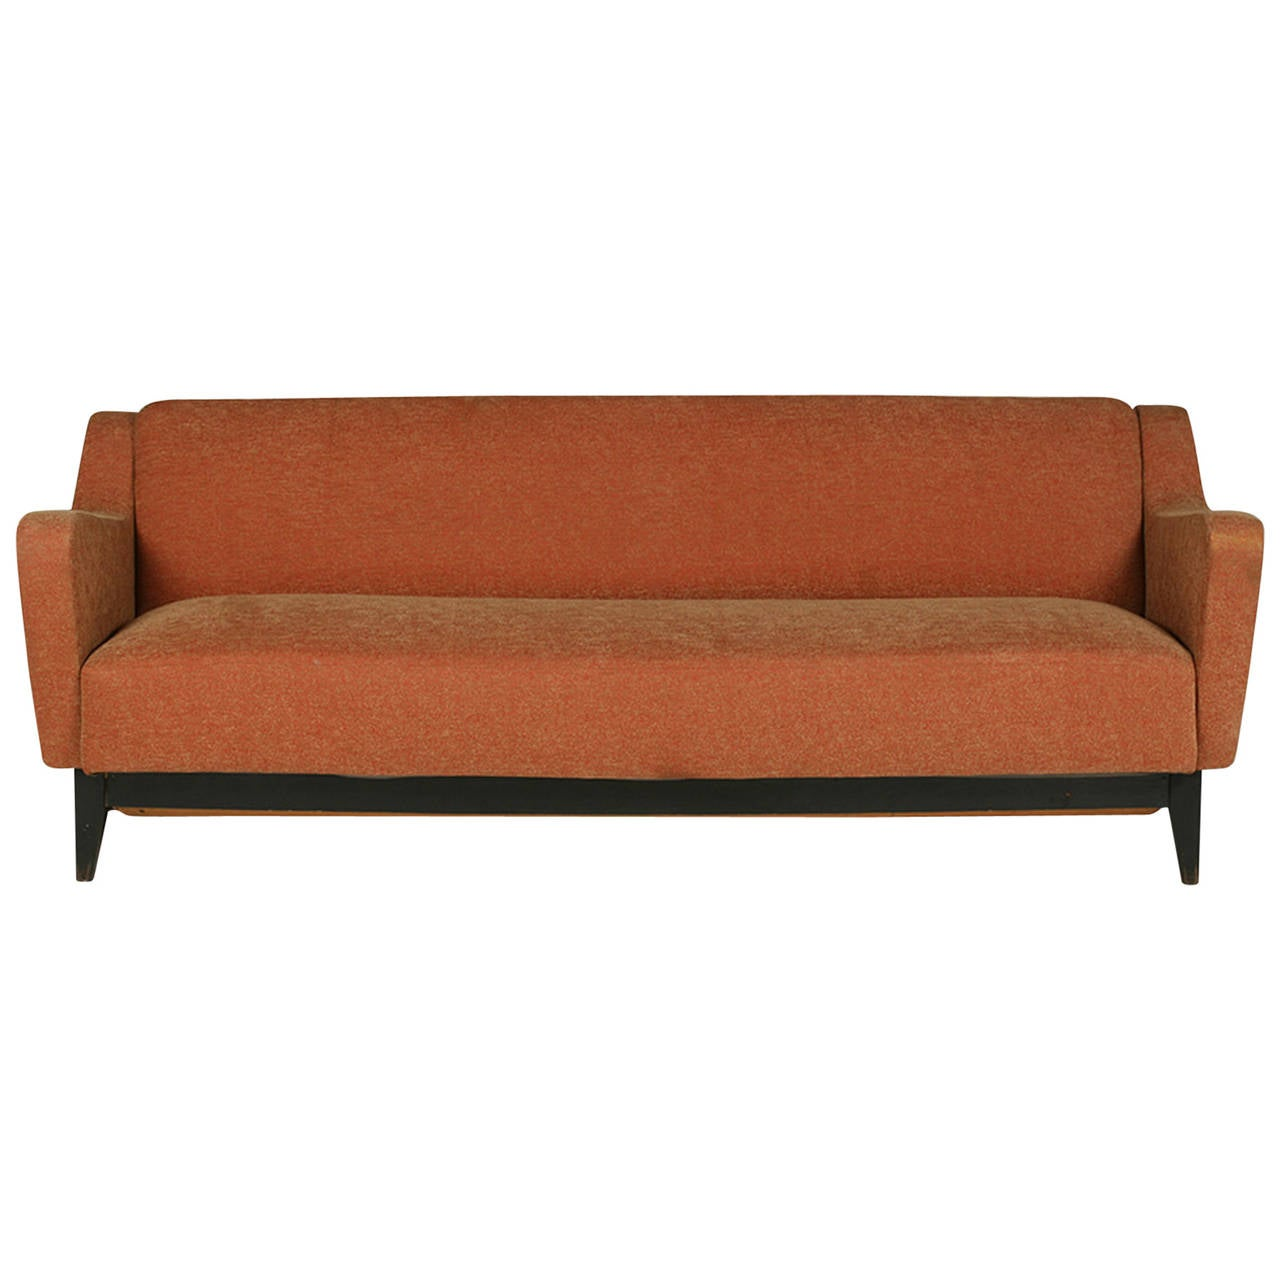 Chic And Modern Vintage Italian Sofa For Sale At 1stdibs